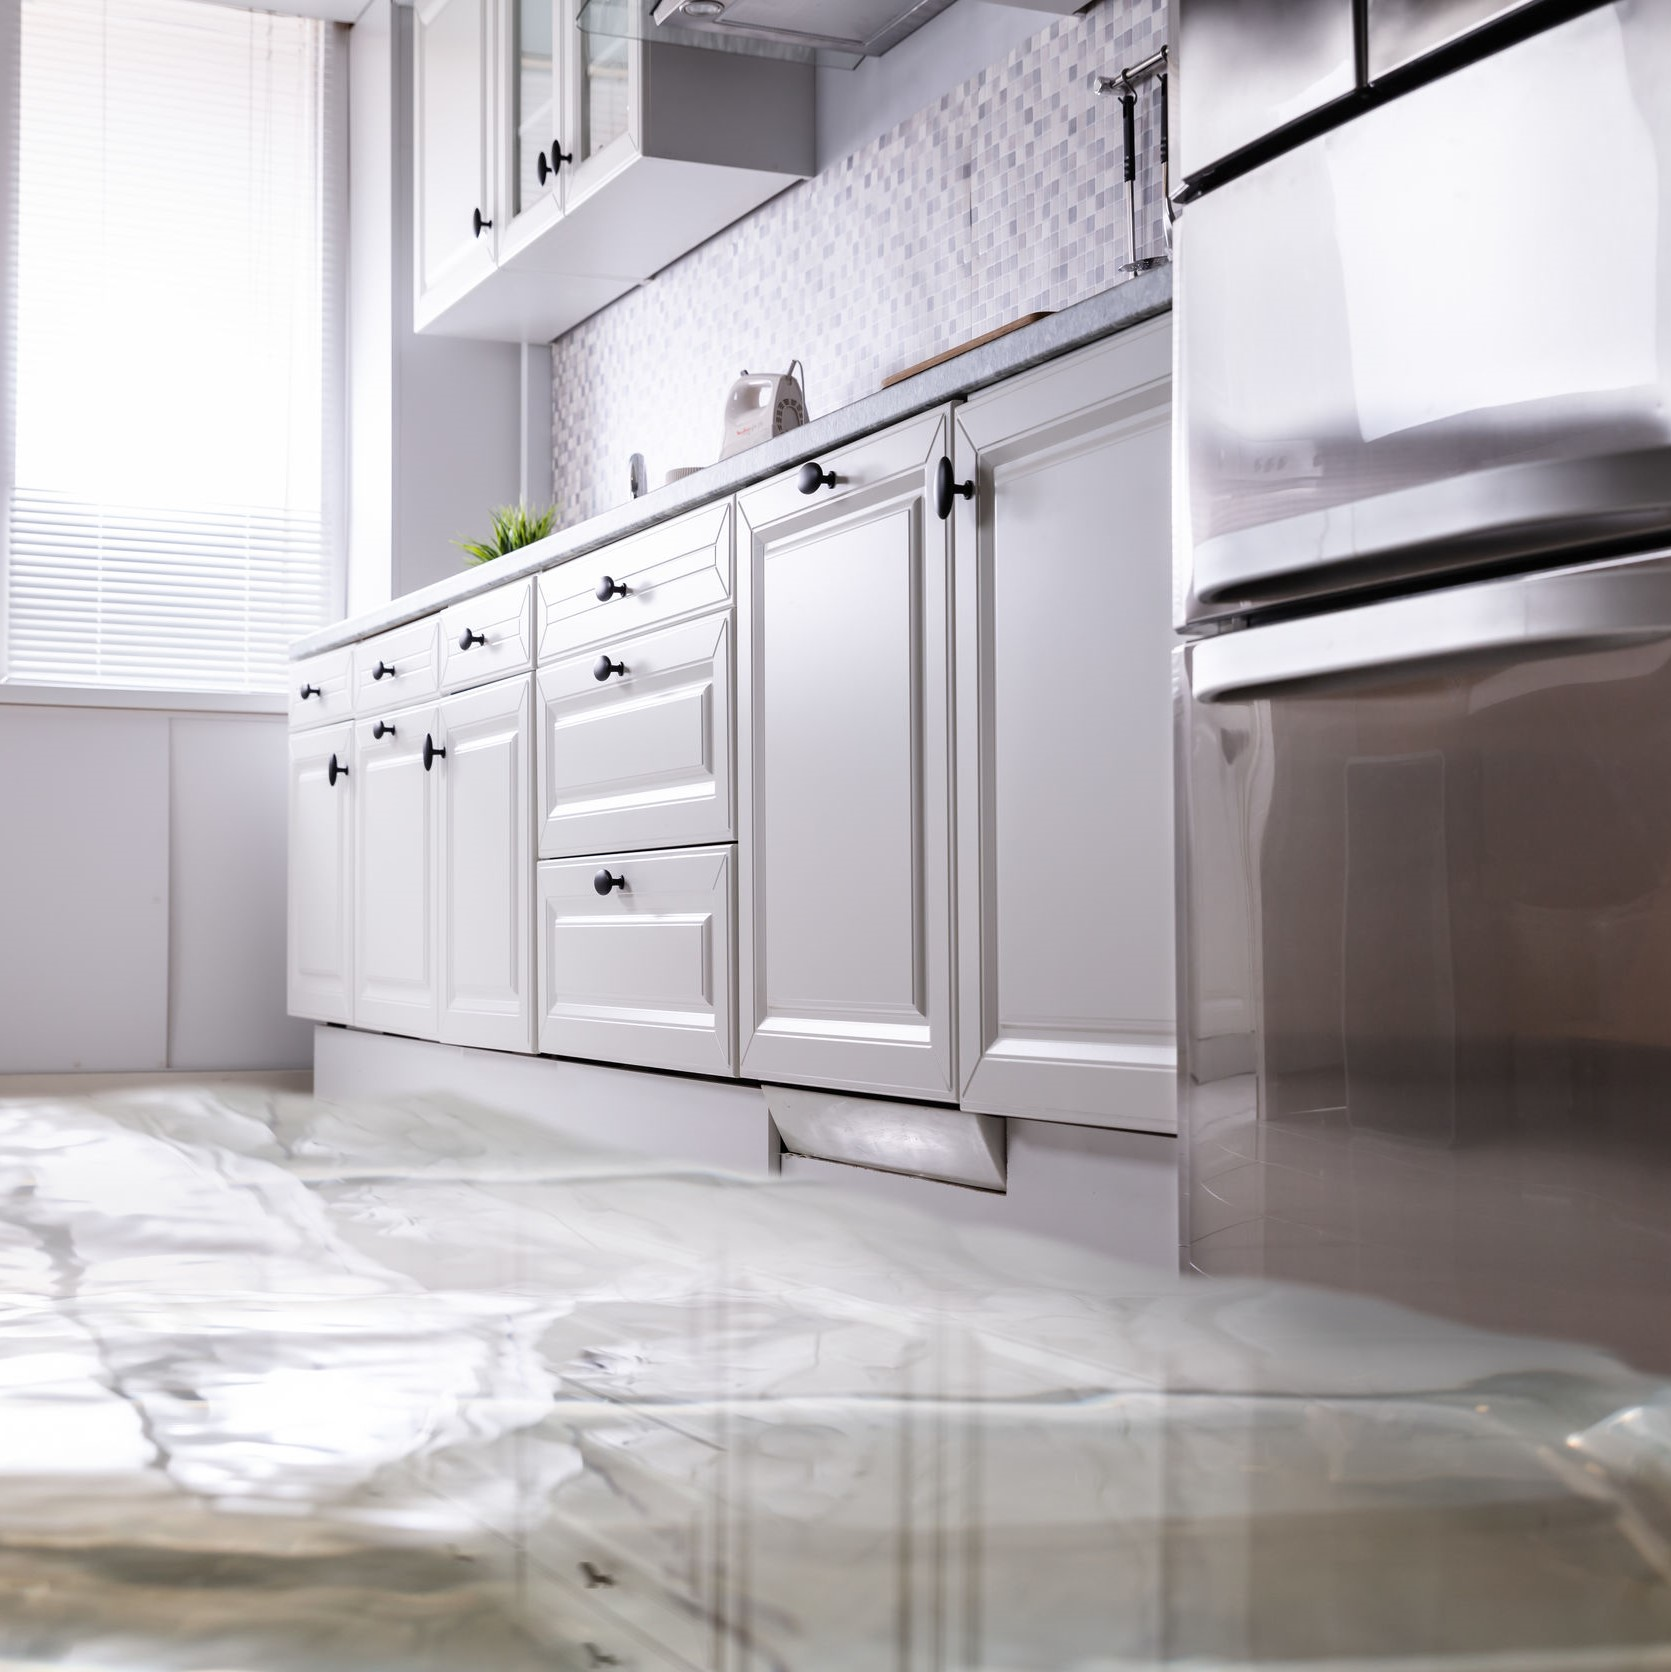 A kitchen that has been flooded due to a leaky or broken pipe.